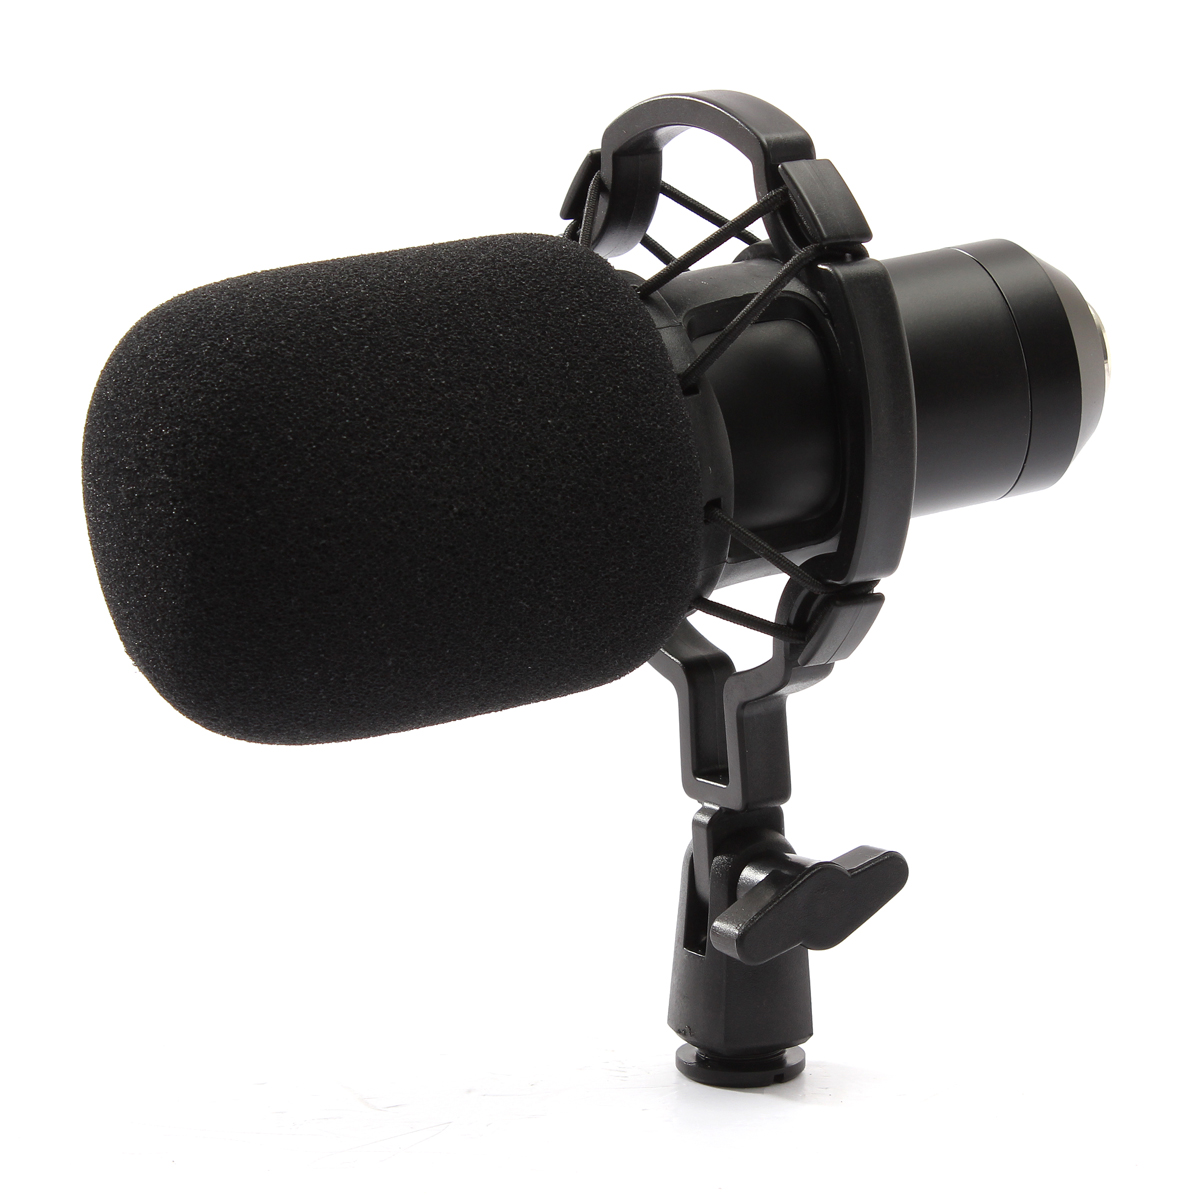 bm800 condenser microphone recording end 8 20 2018 6 15 pm. Black Bedroom Furniture Sets. Home Design Ideas